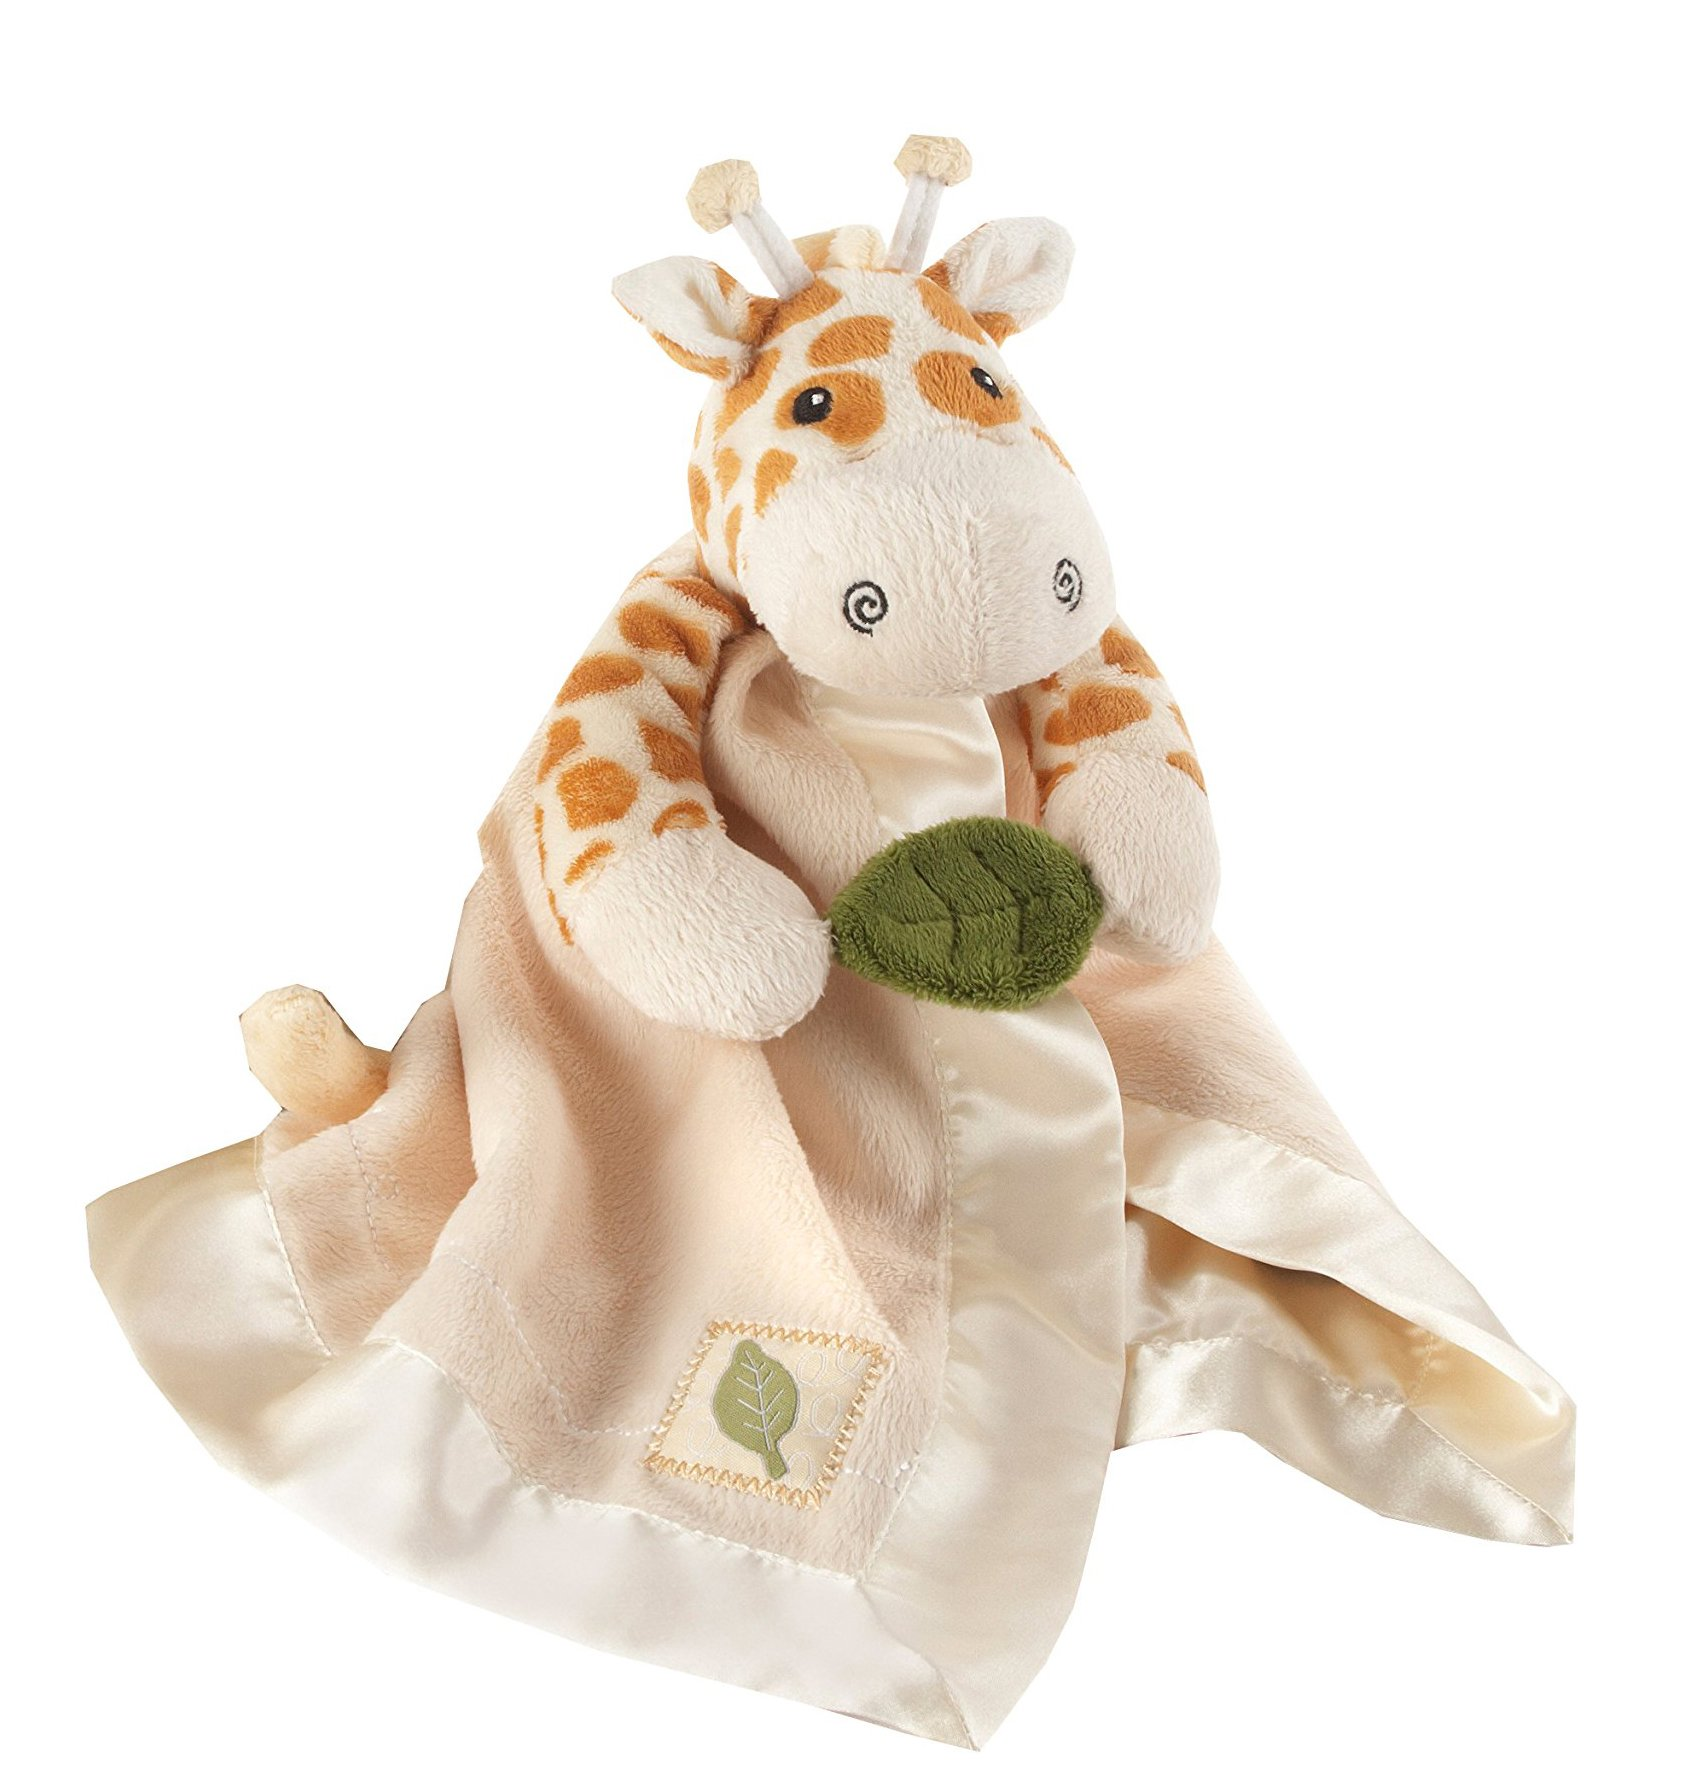 Baby Aspen, Jakka the Giraffe Little Expeditions Plush Rattle Lovie with Crinkle Leaf, Brown, 0-24 Months